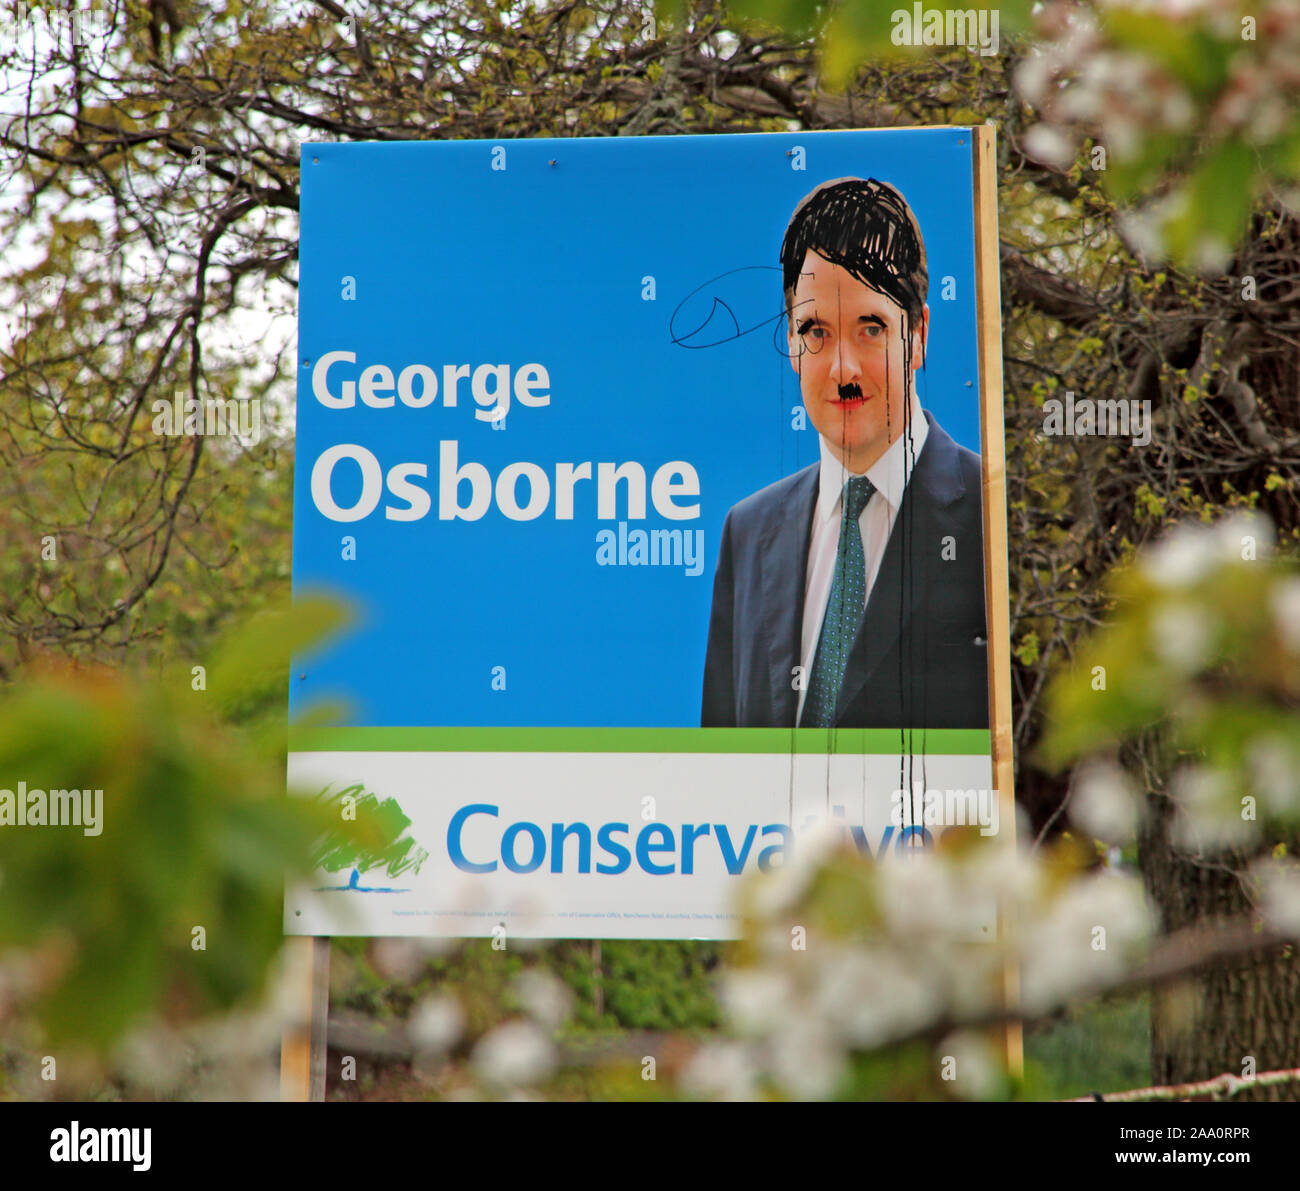 HotpixUK,@HotpixUK,GoTonySmith,England,UK,Cheshire,General Election,promises,poster,posters,Election Promises,poll,polling,register to vote,vote,voting,publicity,George Osborne defaced Conservative Election posters and publicity Knutsford Tatton,North West England,George Osborne,defaced Election poster,Conservative,ward,Northern Powerhouse,George Gideon Oliver Osborne,Vote conservative,selfservatives,vandals,vandalized,vandalised,defaced,hate,hated,in a field,rural,farming,countryside